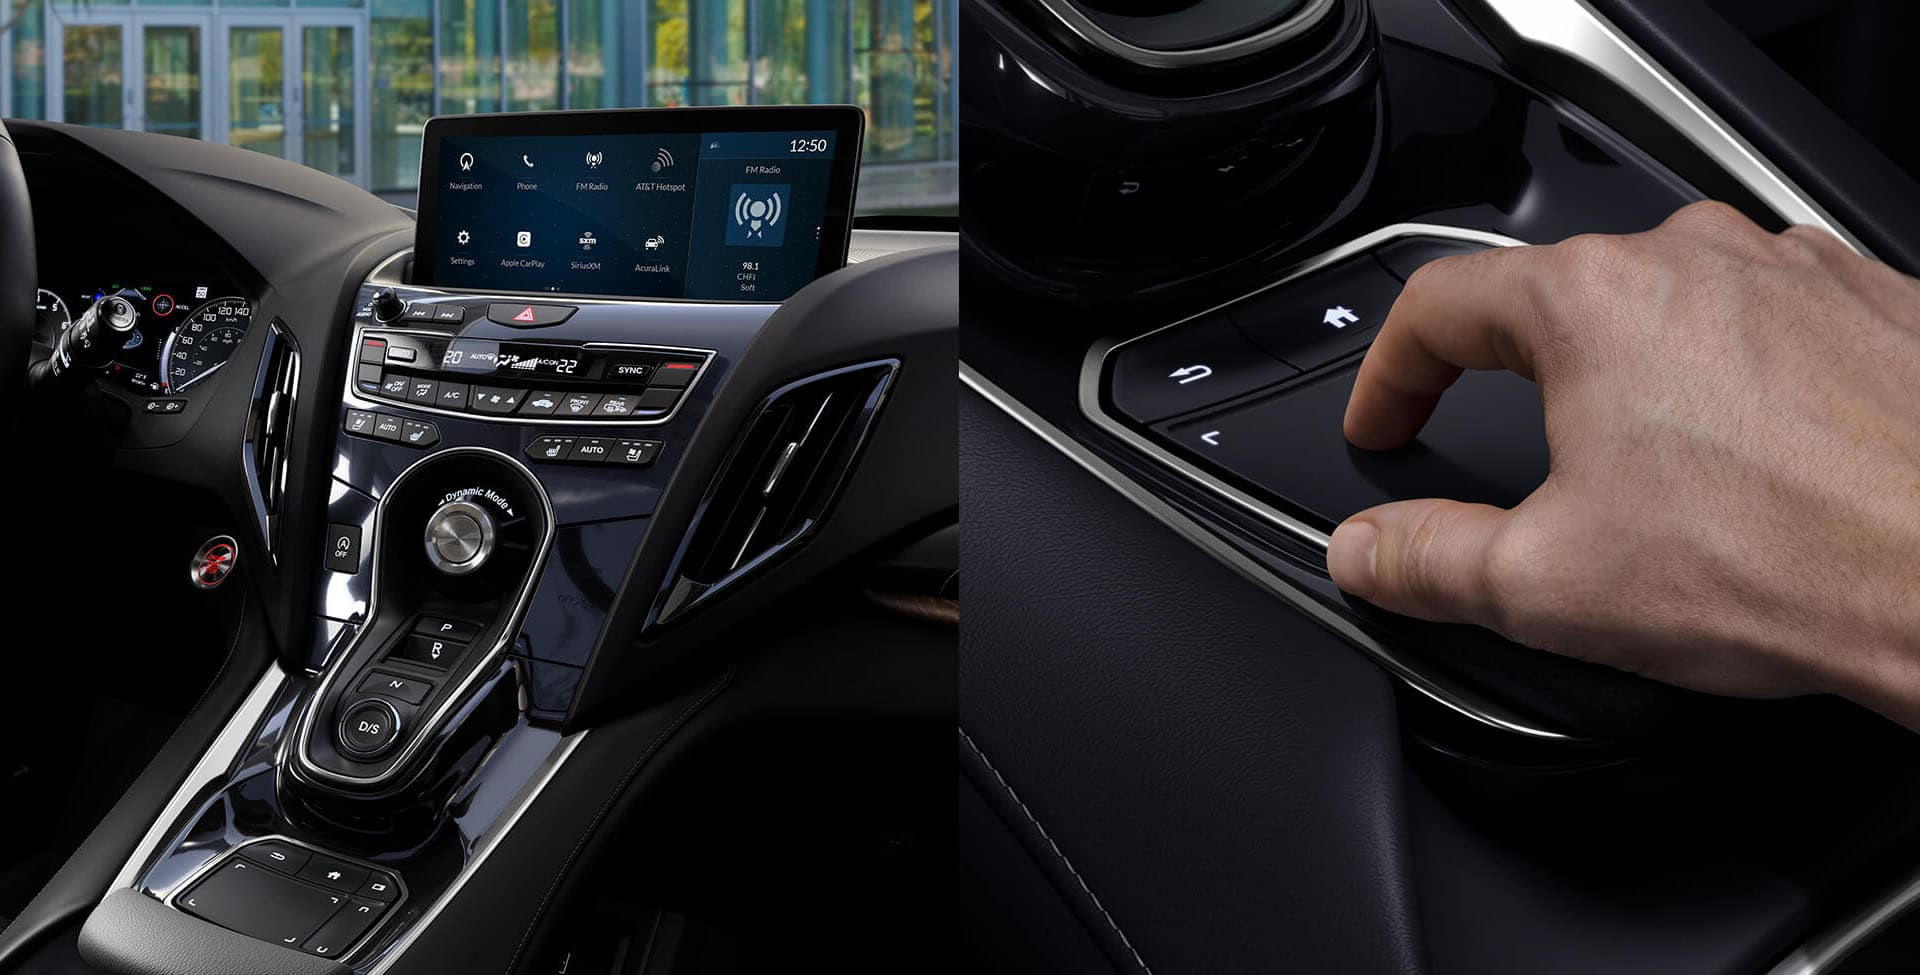 Buttons and such in the RDX